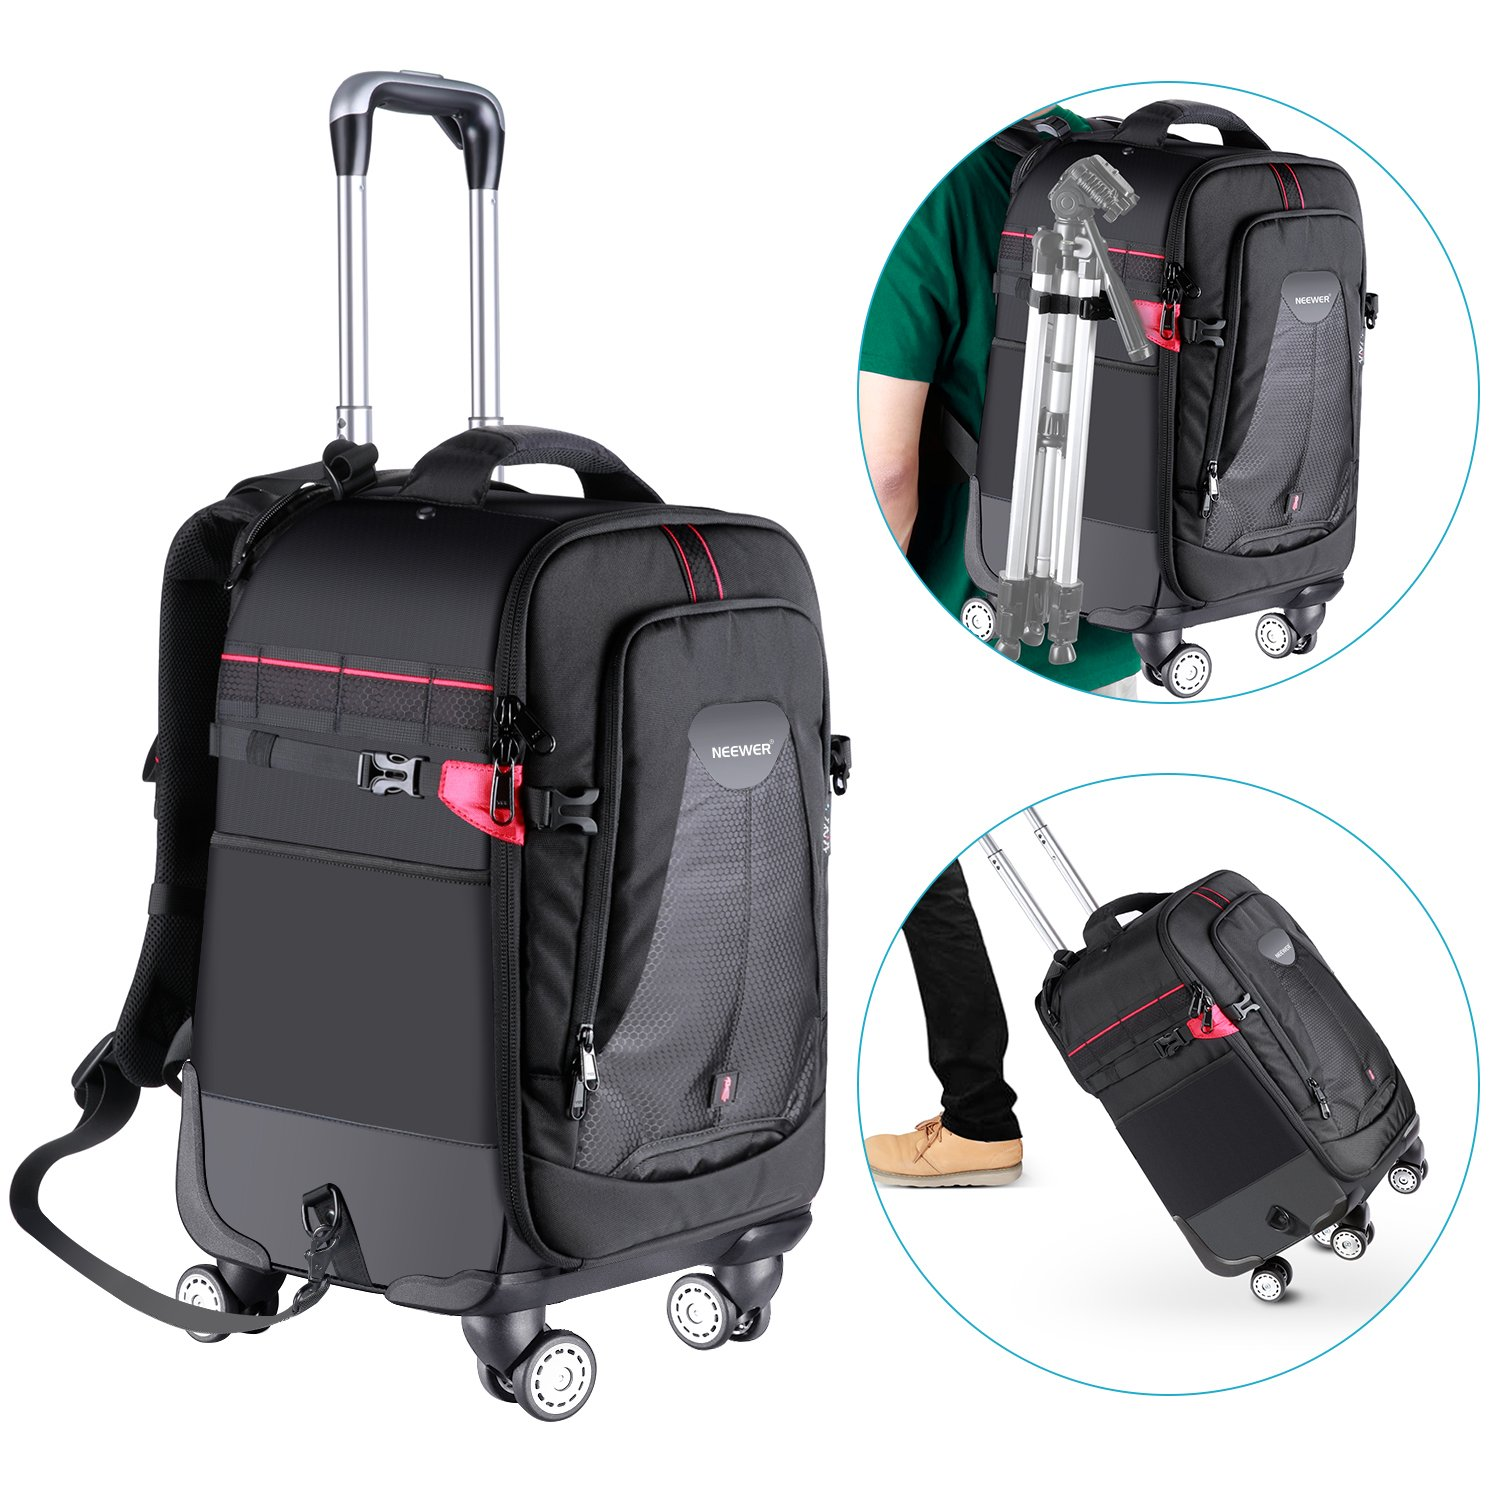 Neewer 2-in-1 Rolling Camera Backpack Trolley Case with Side Handle- Anti-shock Detachable Padded Compartment, Hidden Pull Bar, Durable, Waterproof for Camera,Tripod,Flash Light,Lens,Laptop(Black) 10092972